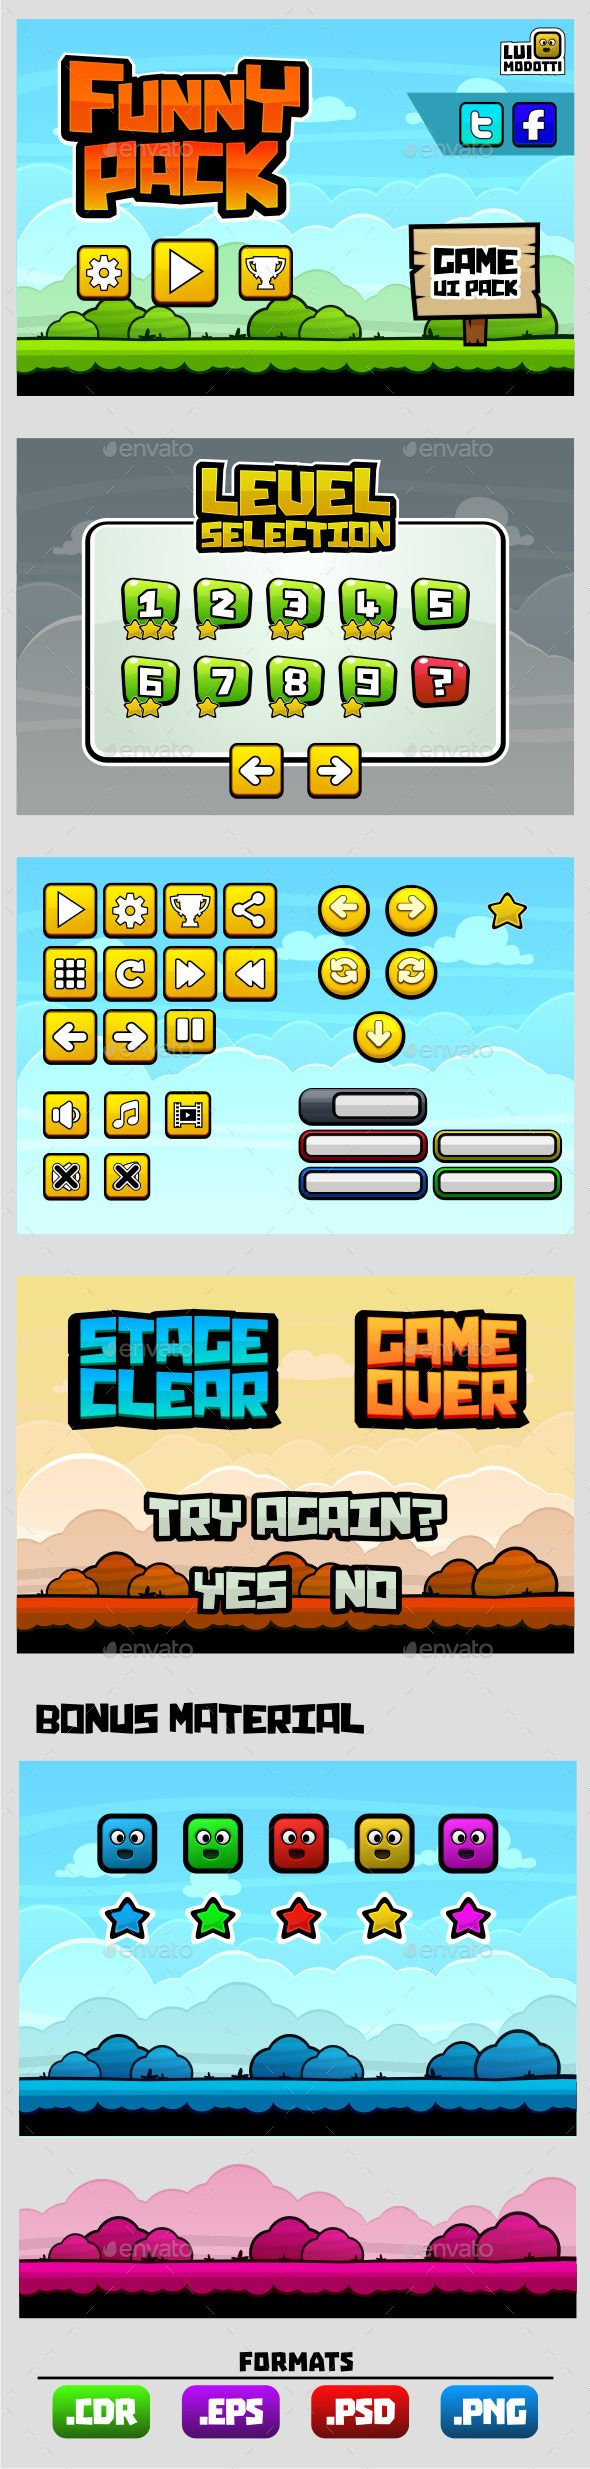 Funny Pack - Game UI Pack Template PSD, Transparent PNG, Vector EPS. Download here: https://graphicriver.net/item/funny-pack-game-ui-pack/9070519?ref=ksioks